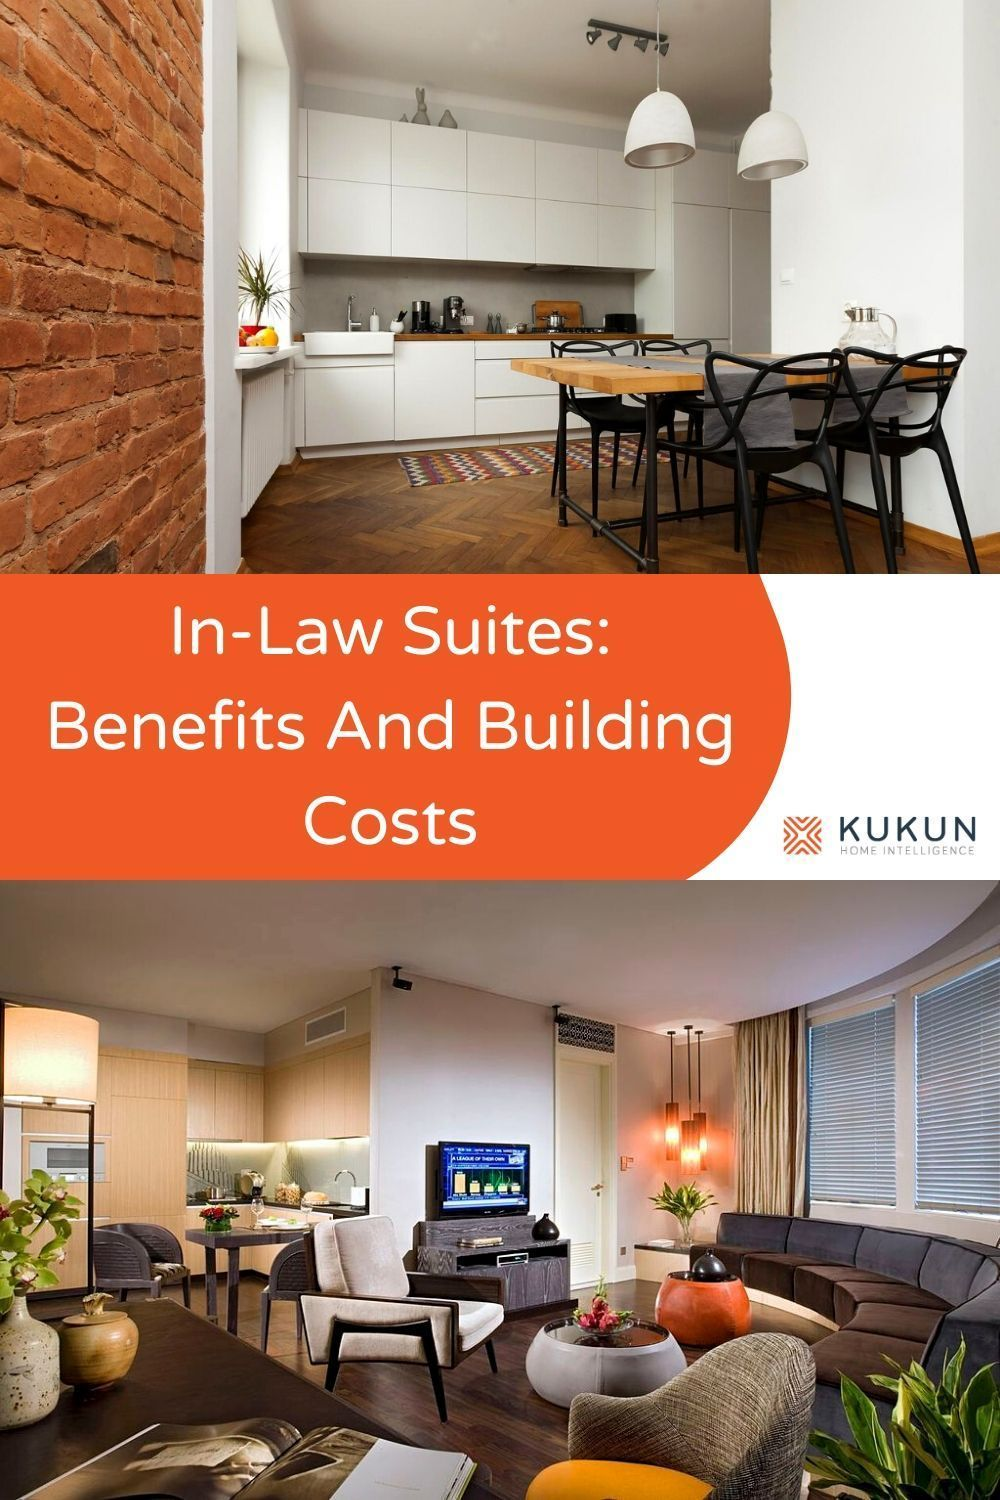 InLaw Suite A Complete Guide on Its Benefits and Costs